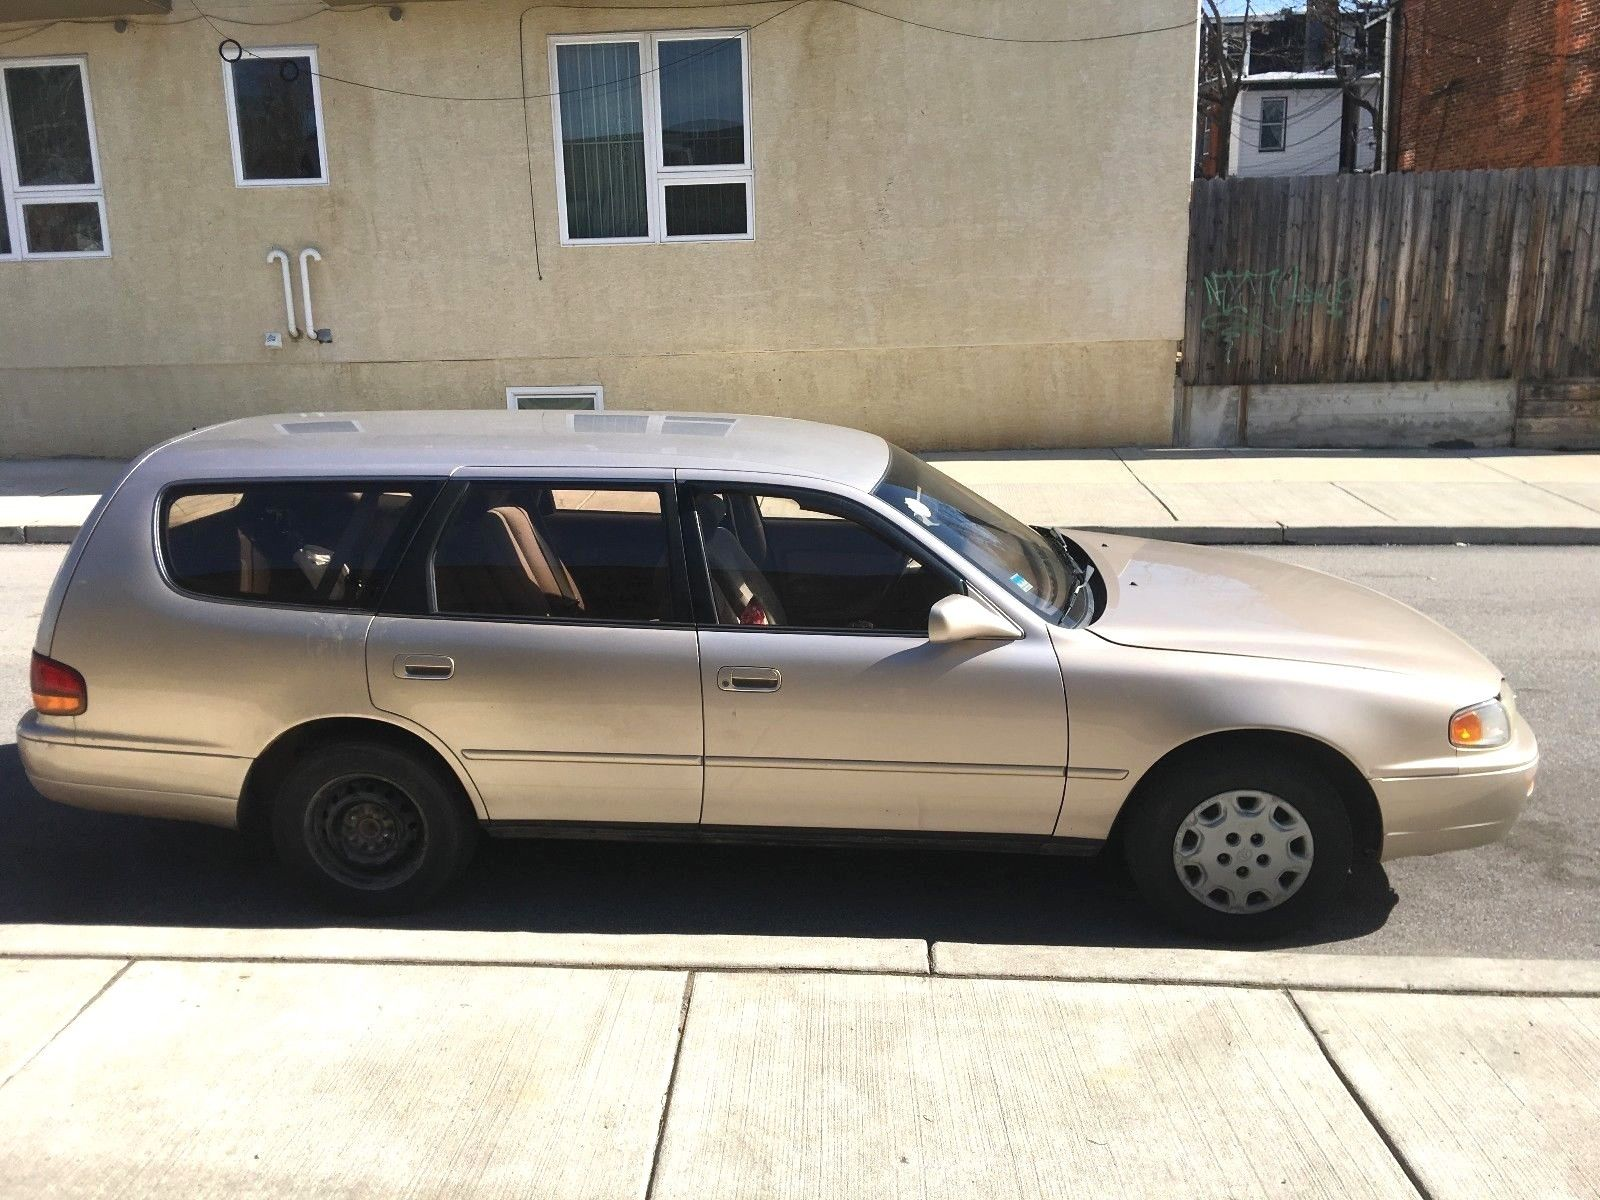 Awesome 1995 Toyota Camry Rare Station Wagon With